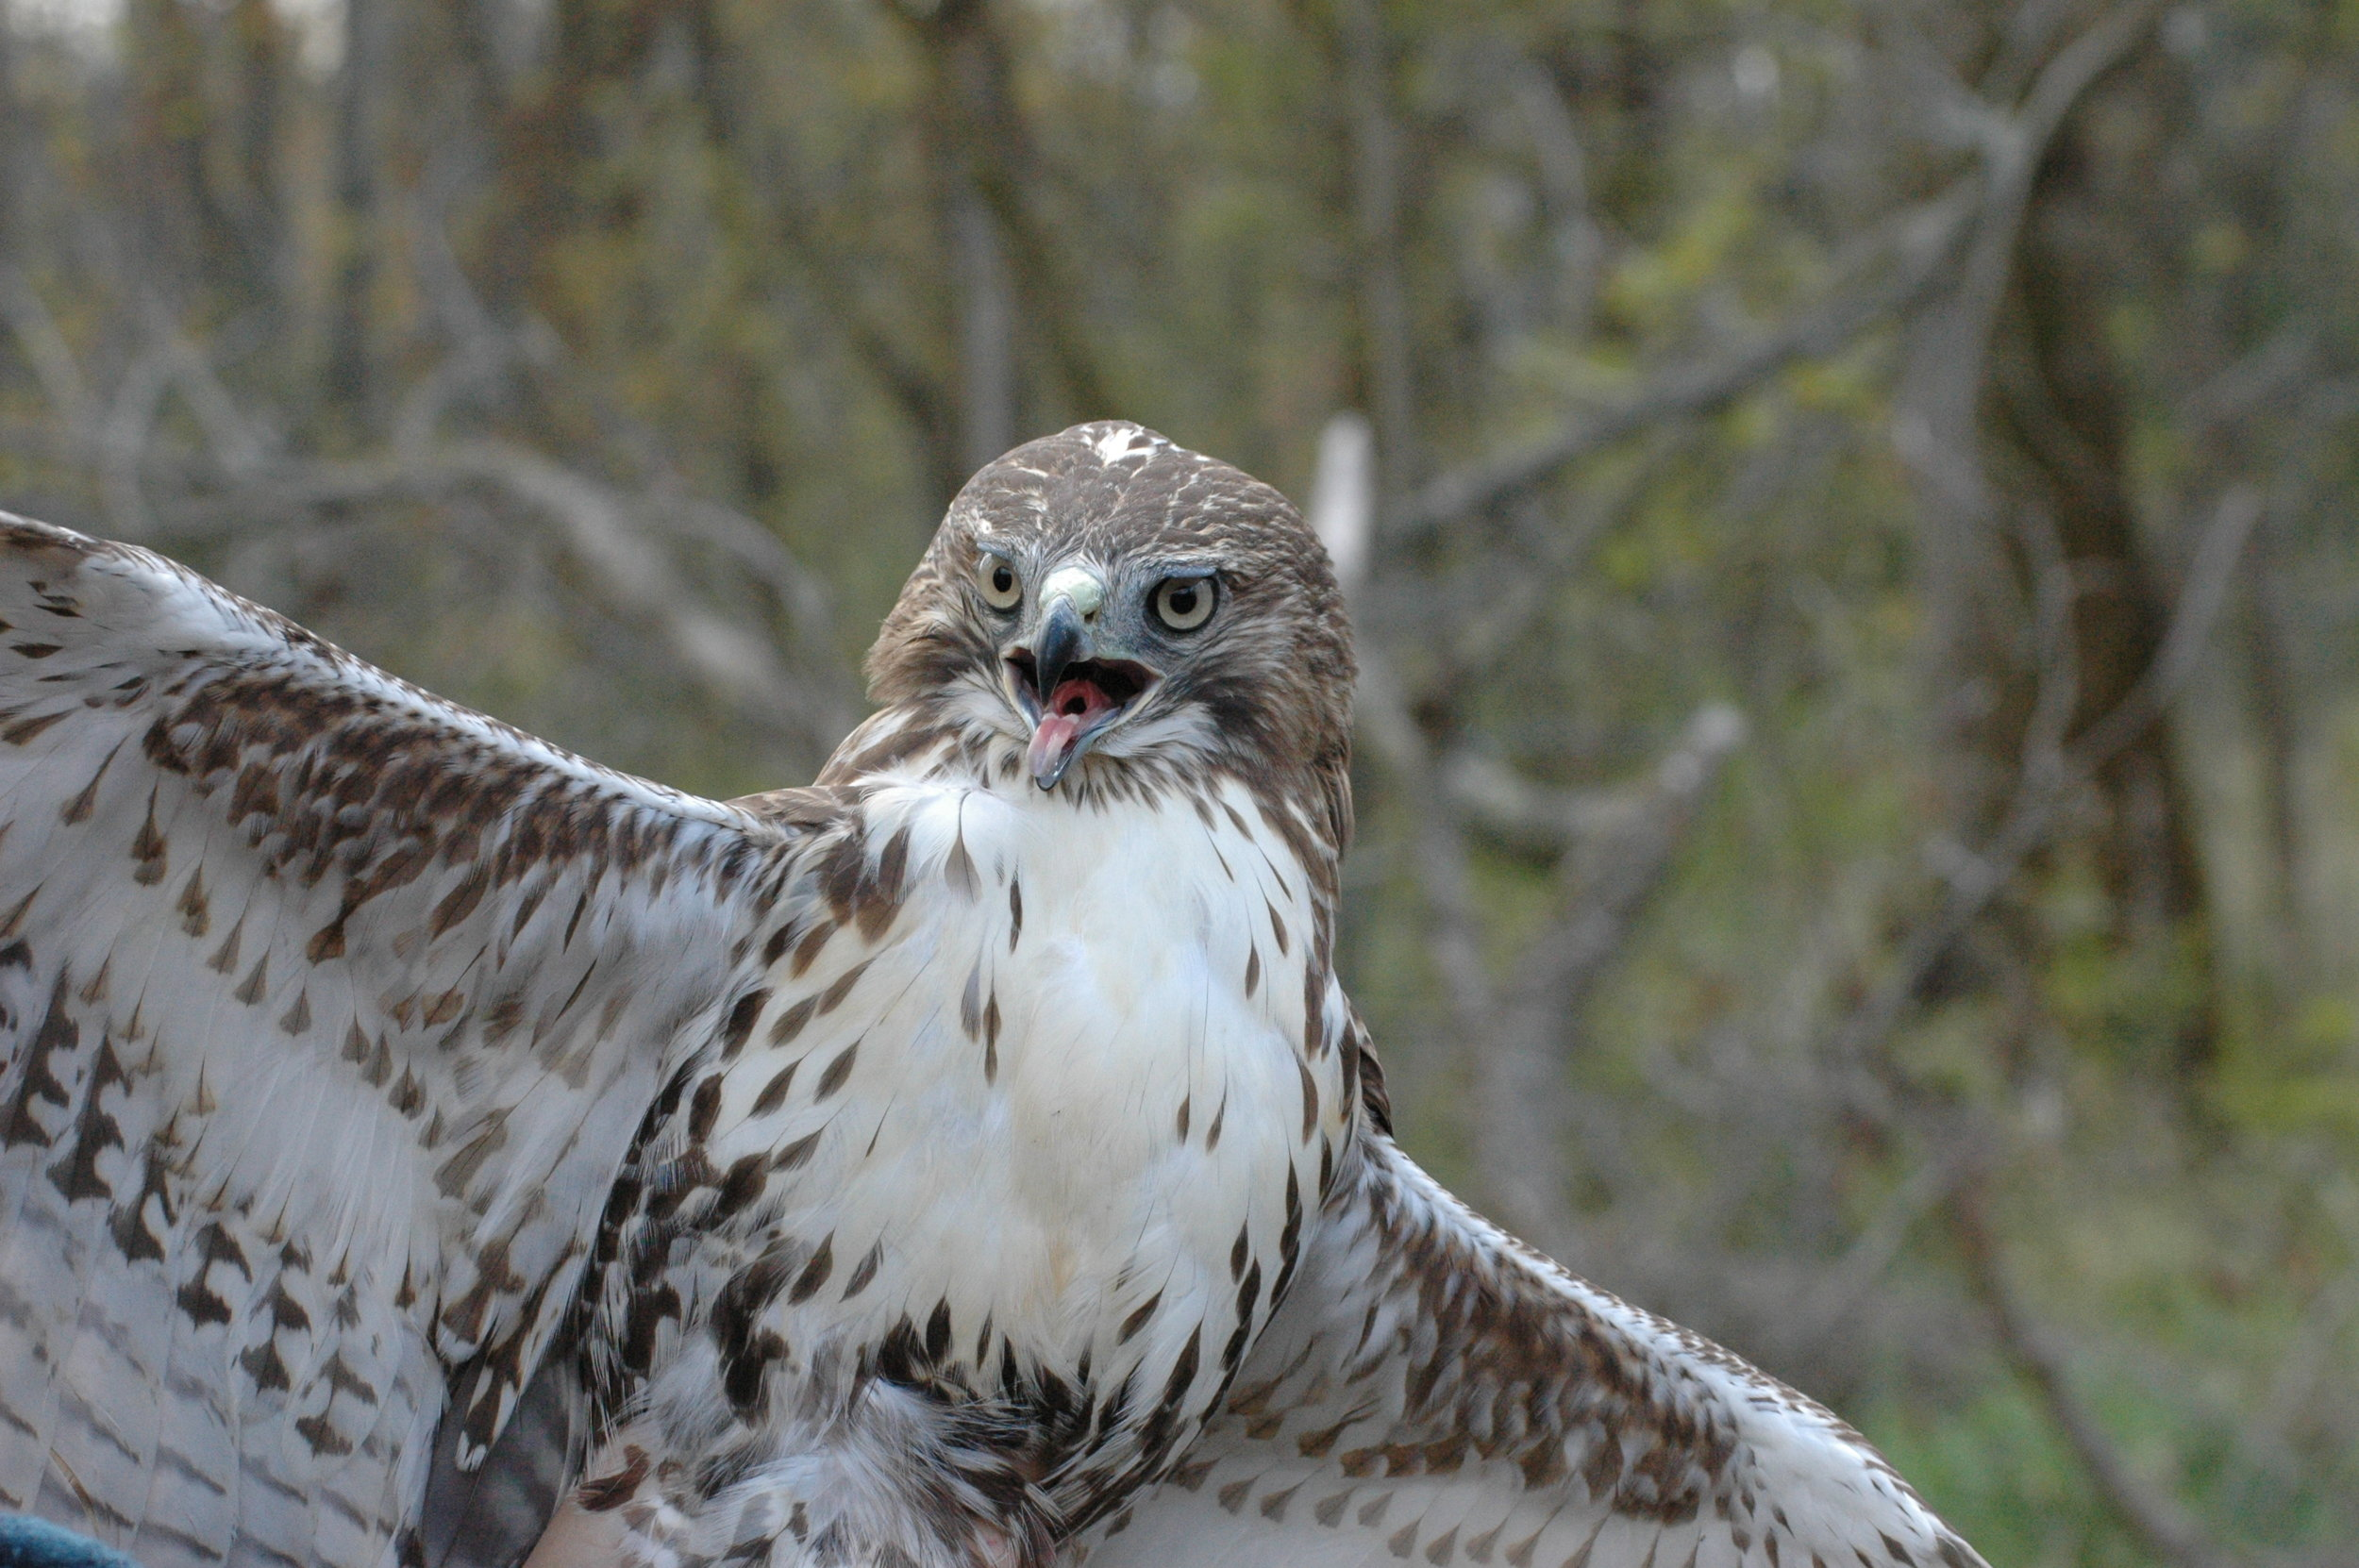 Red-tailed hawk, photo by Tim Eisele